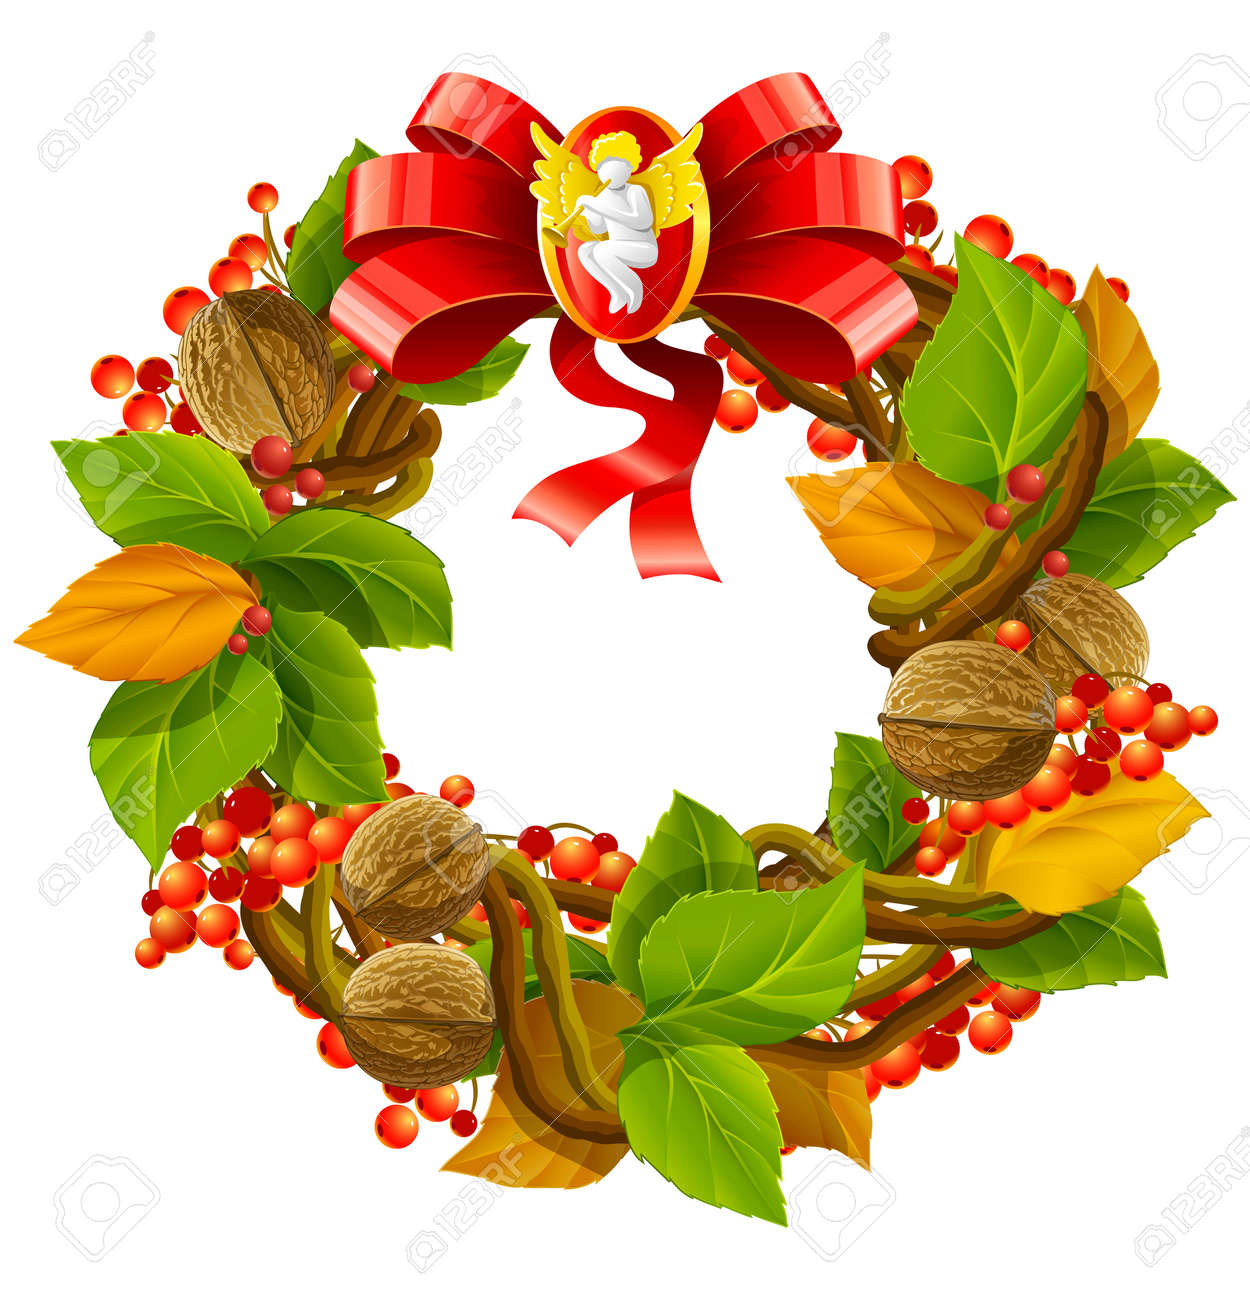 vector illustration of wreath christmas decoration isolated on white background Stock Vector - 3897197